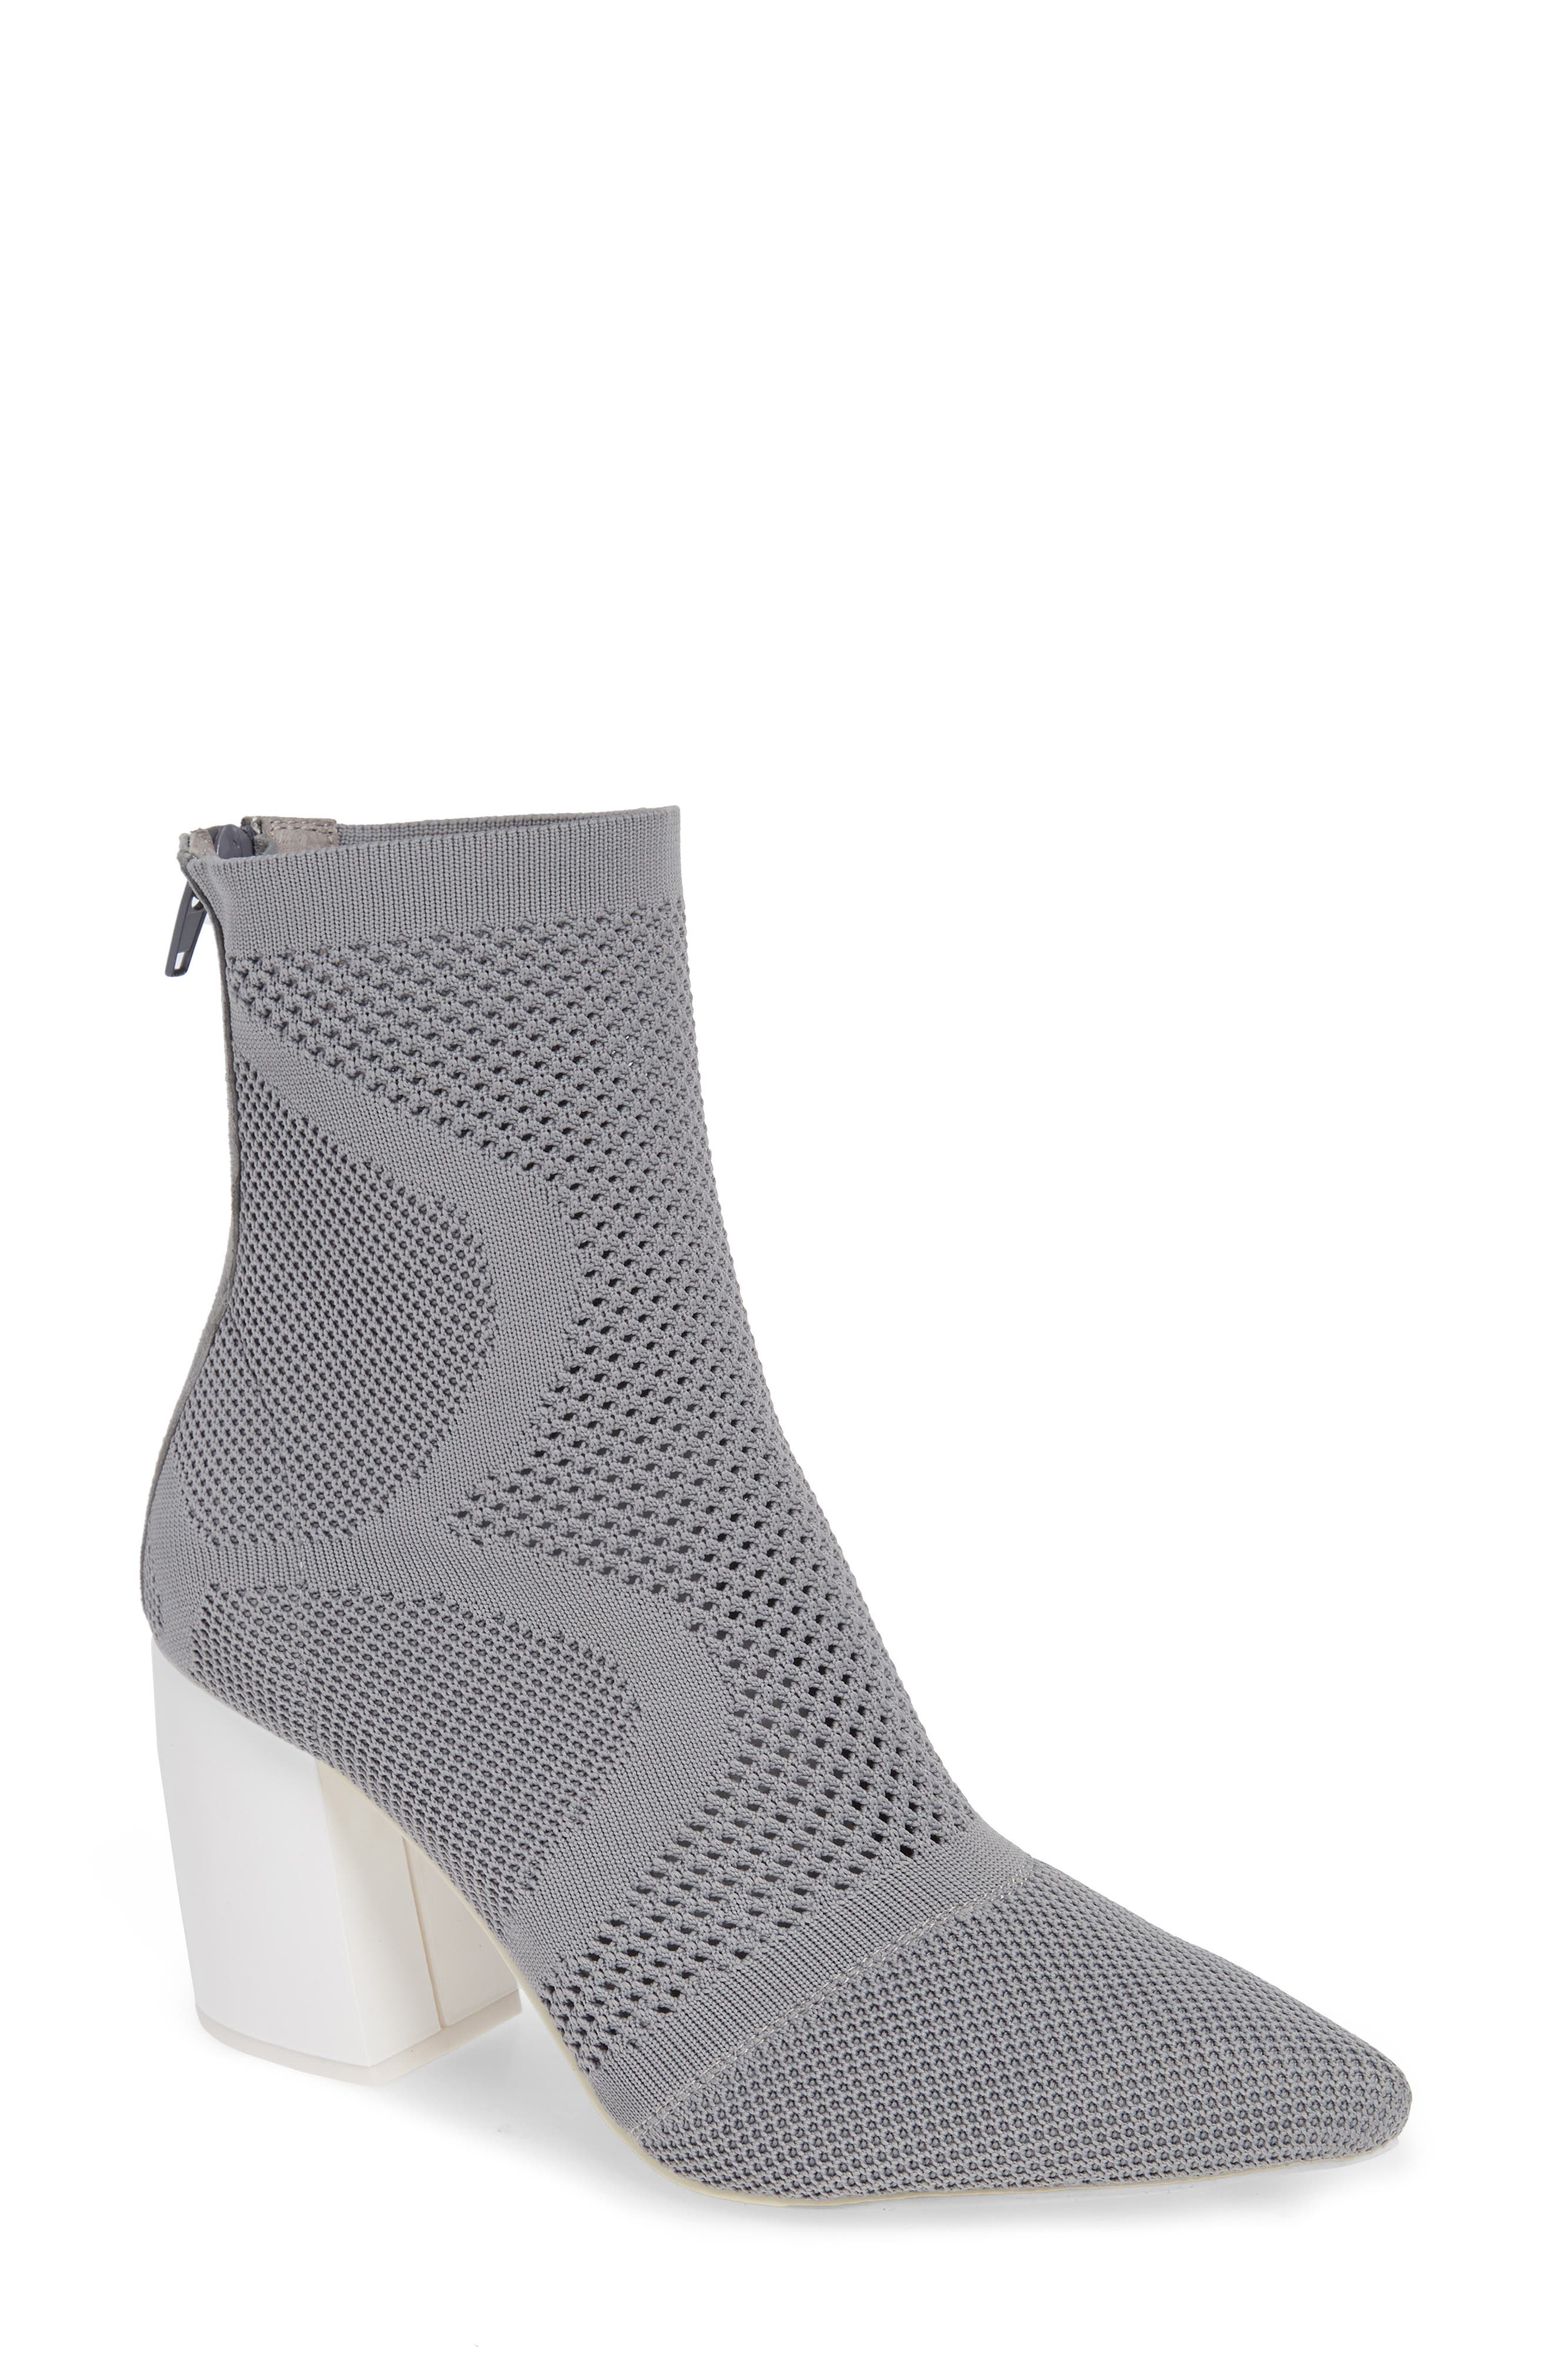 Final Bootie,                             Main thumbnail 1, color,                             GREY WHITE